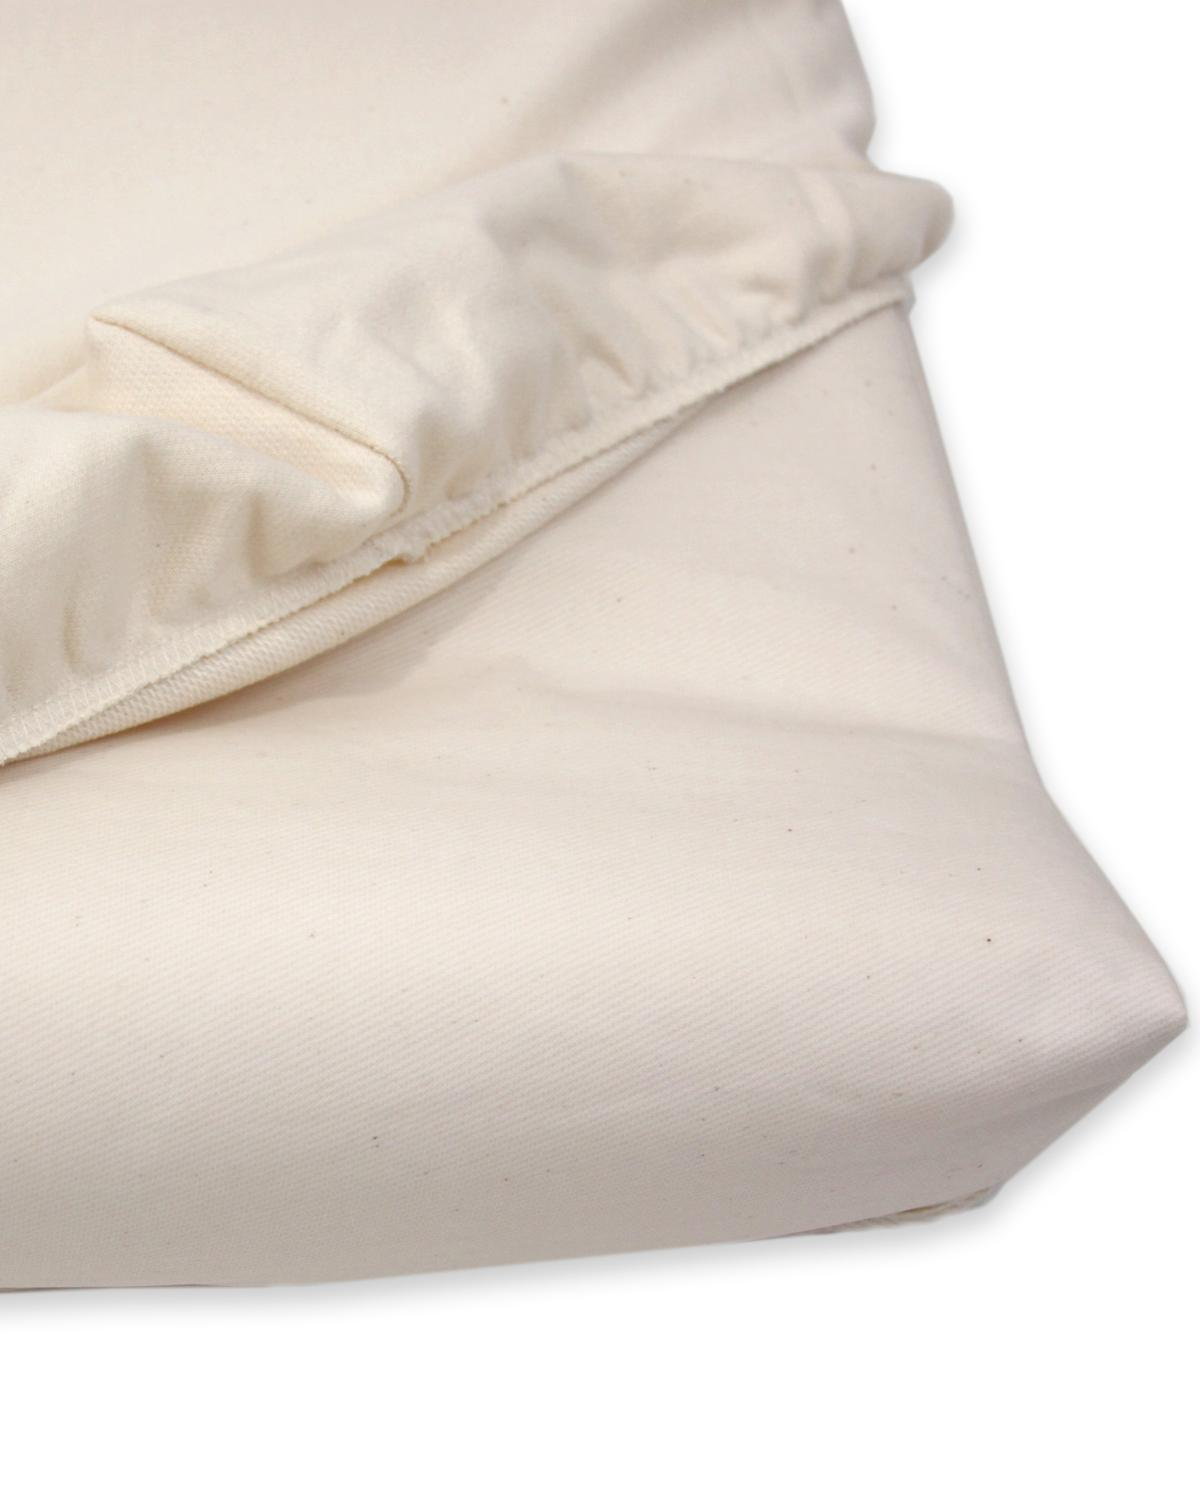 Little naturepedic room 2-Sided Organic Cotton Changing Pad Cover